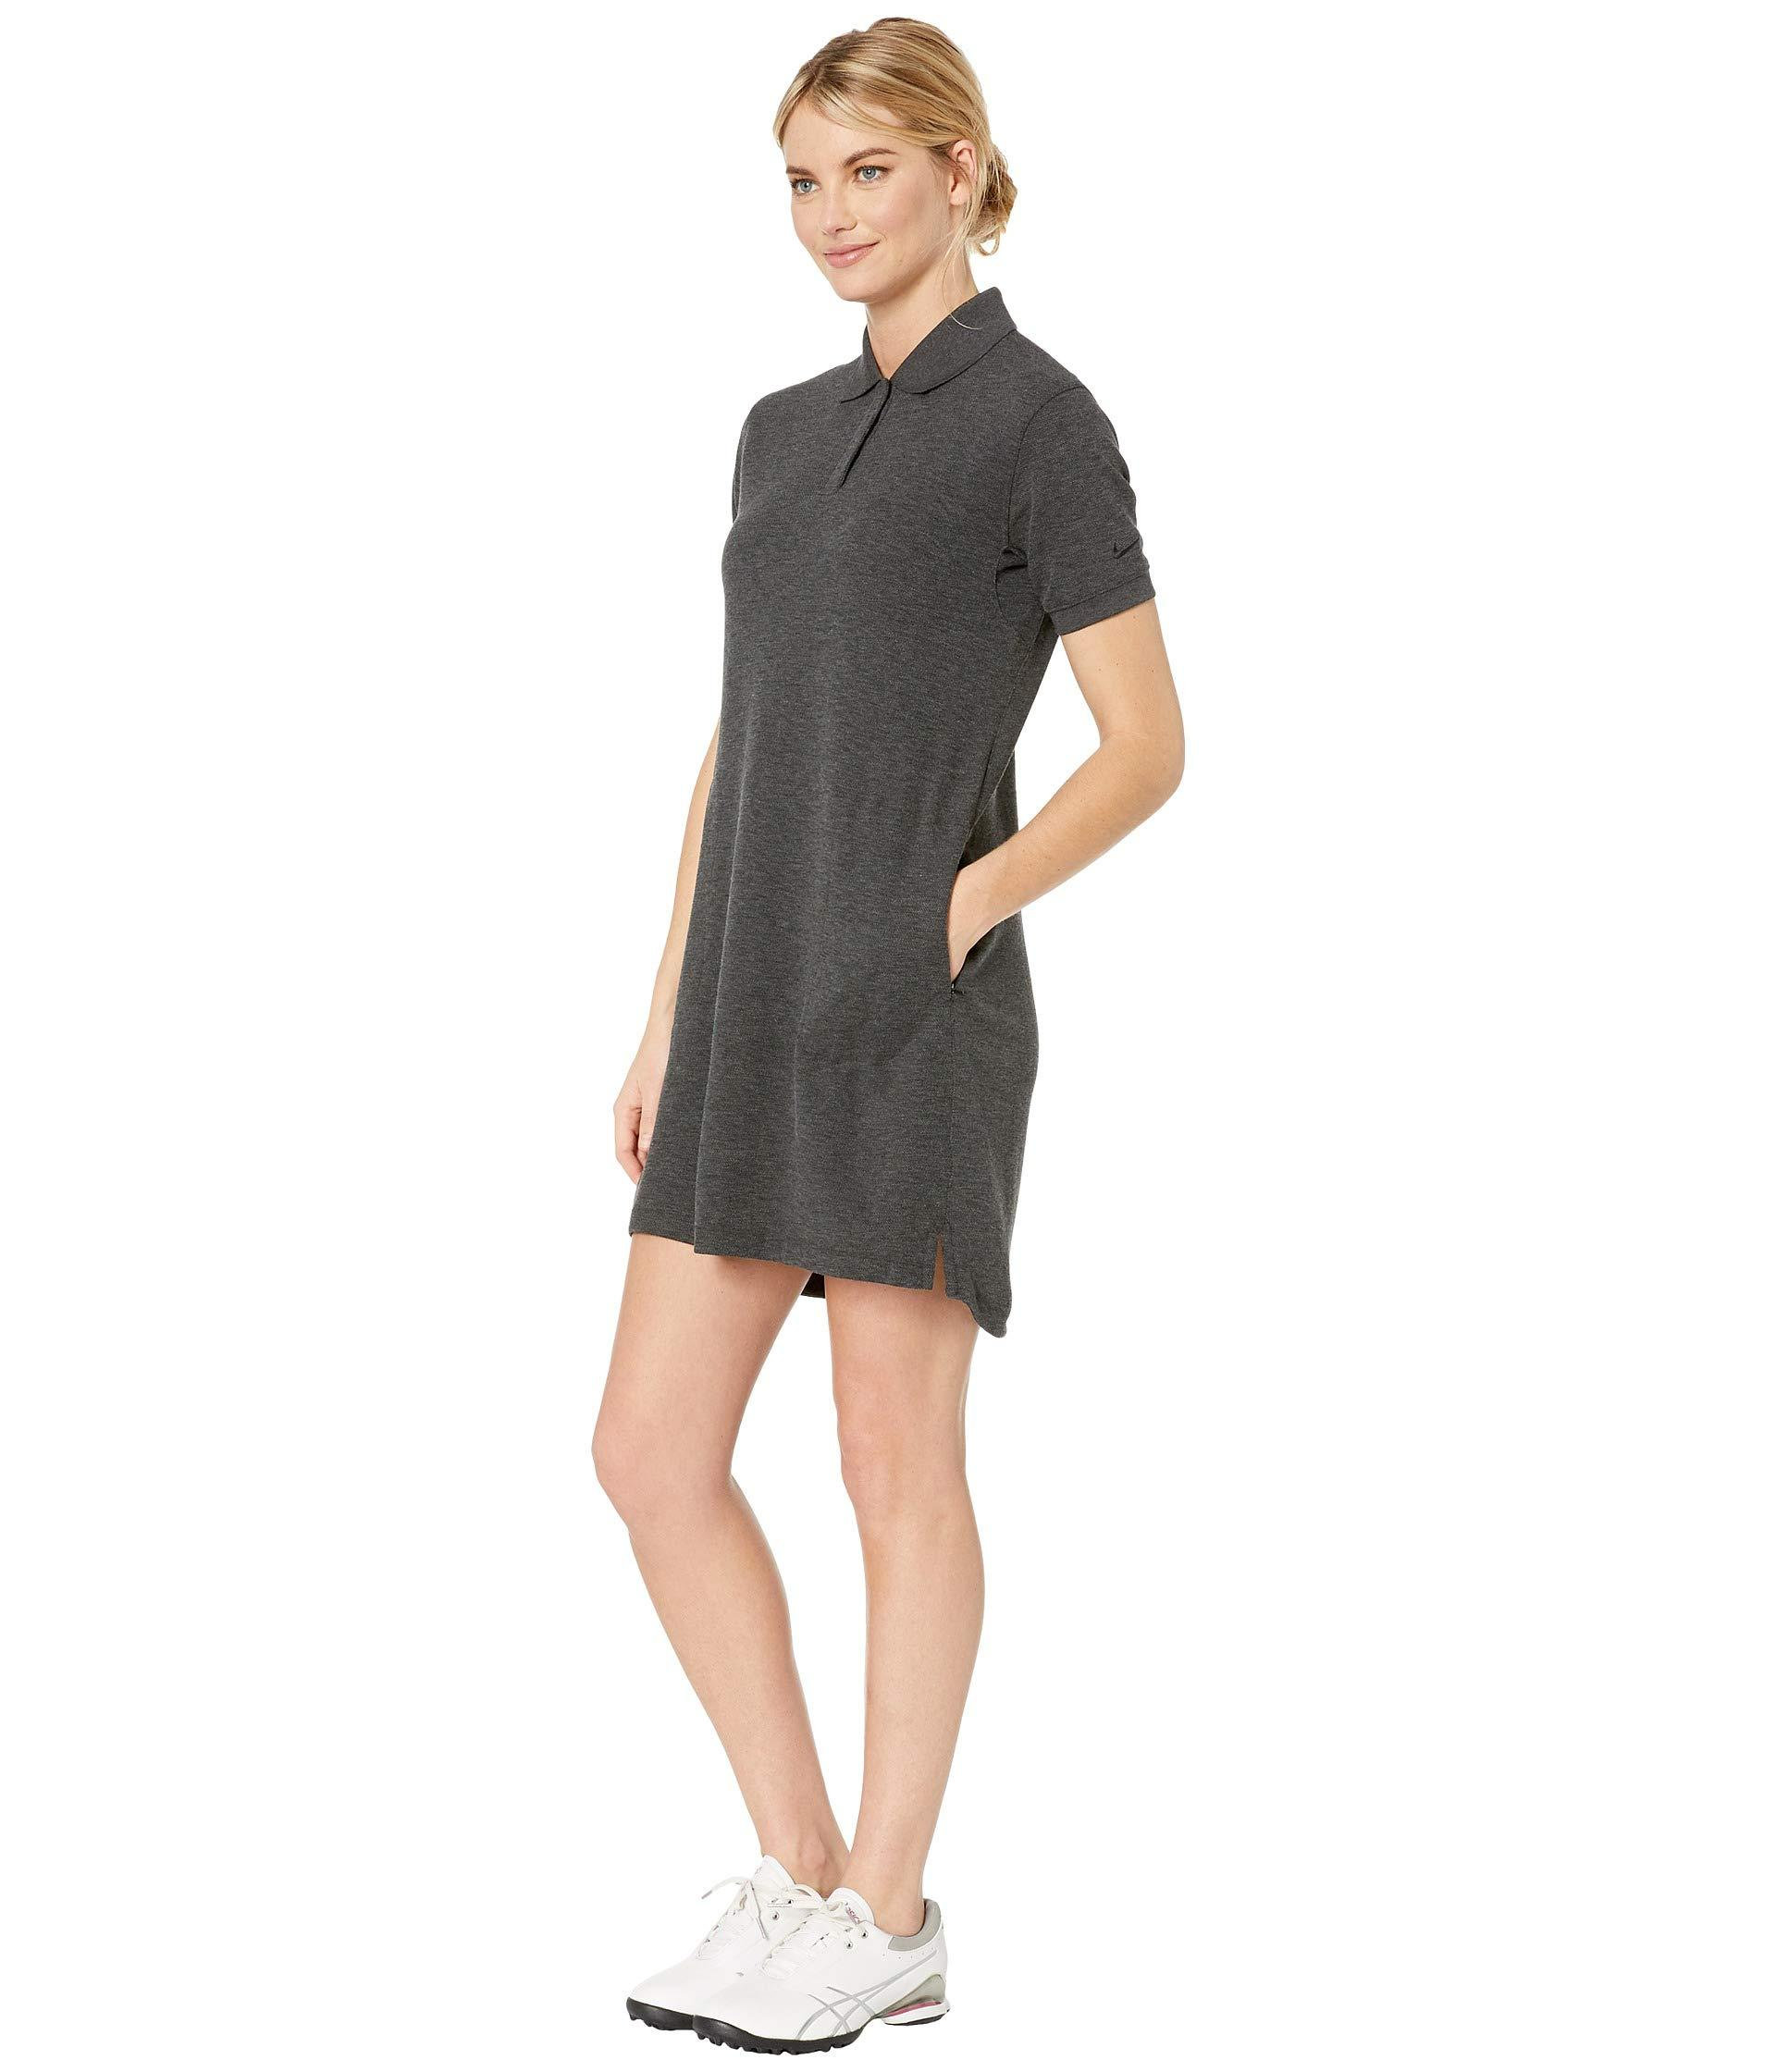 ab2a27cd17105 Lyst - Nike Dry Dress Short Sleeve (black/black) Women's Dress in Black